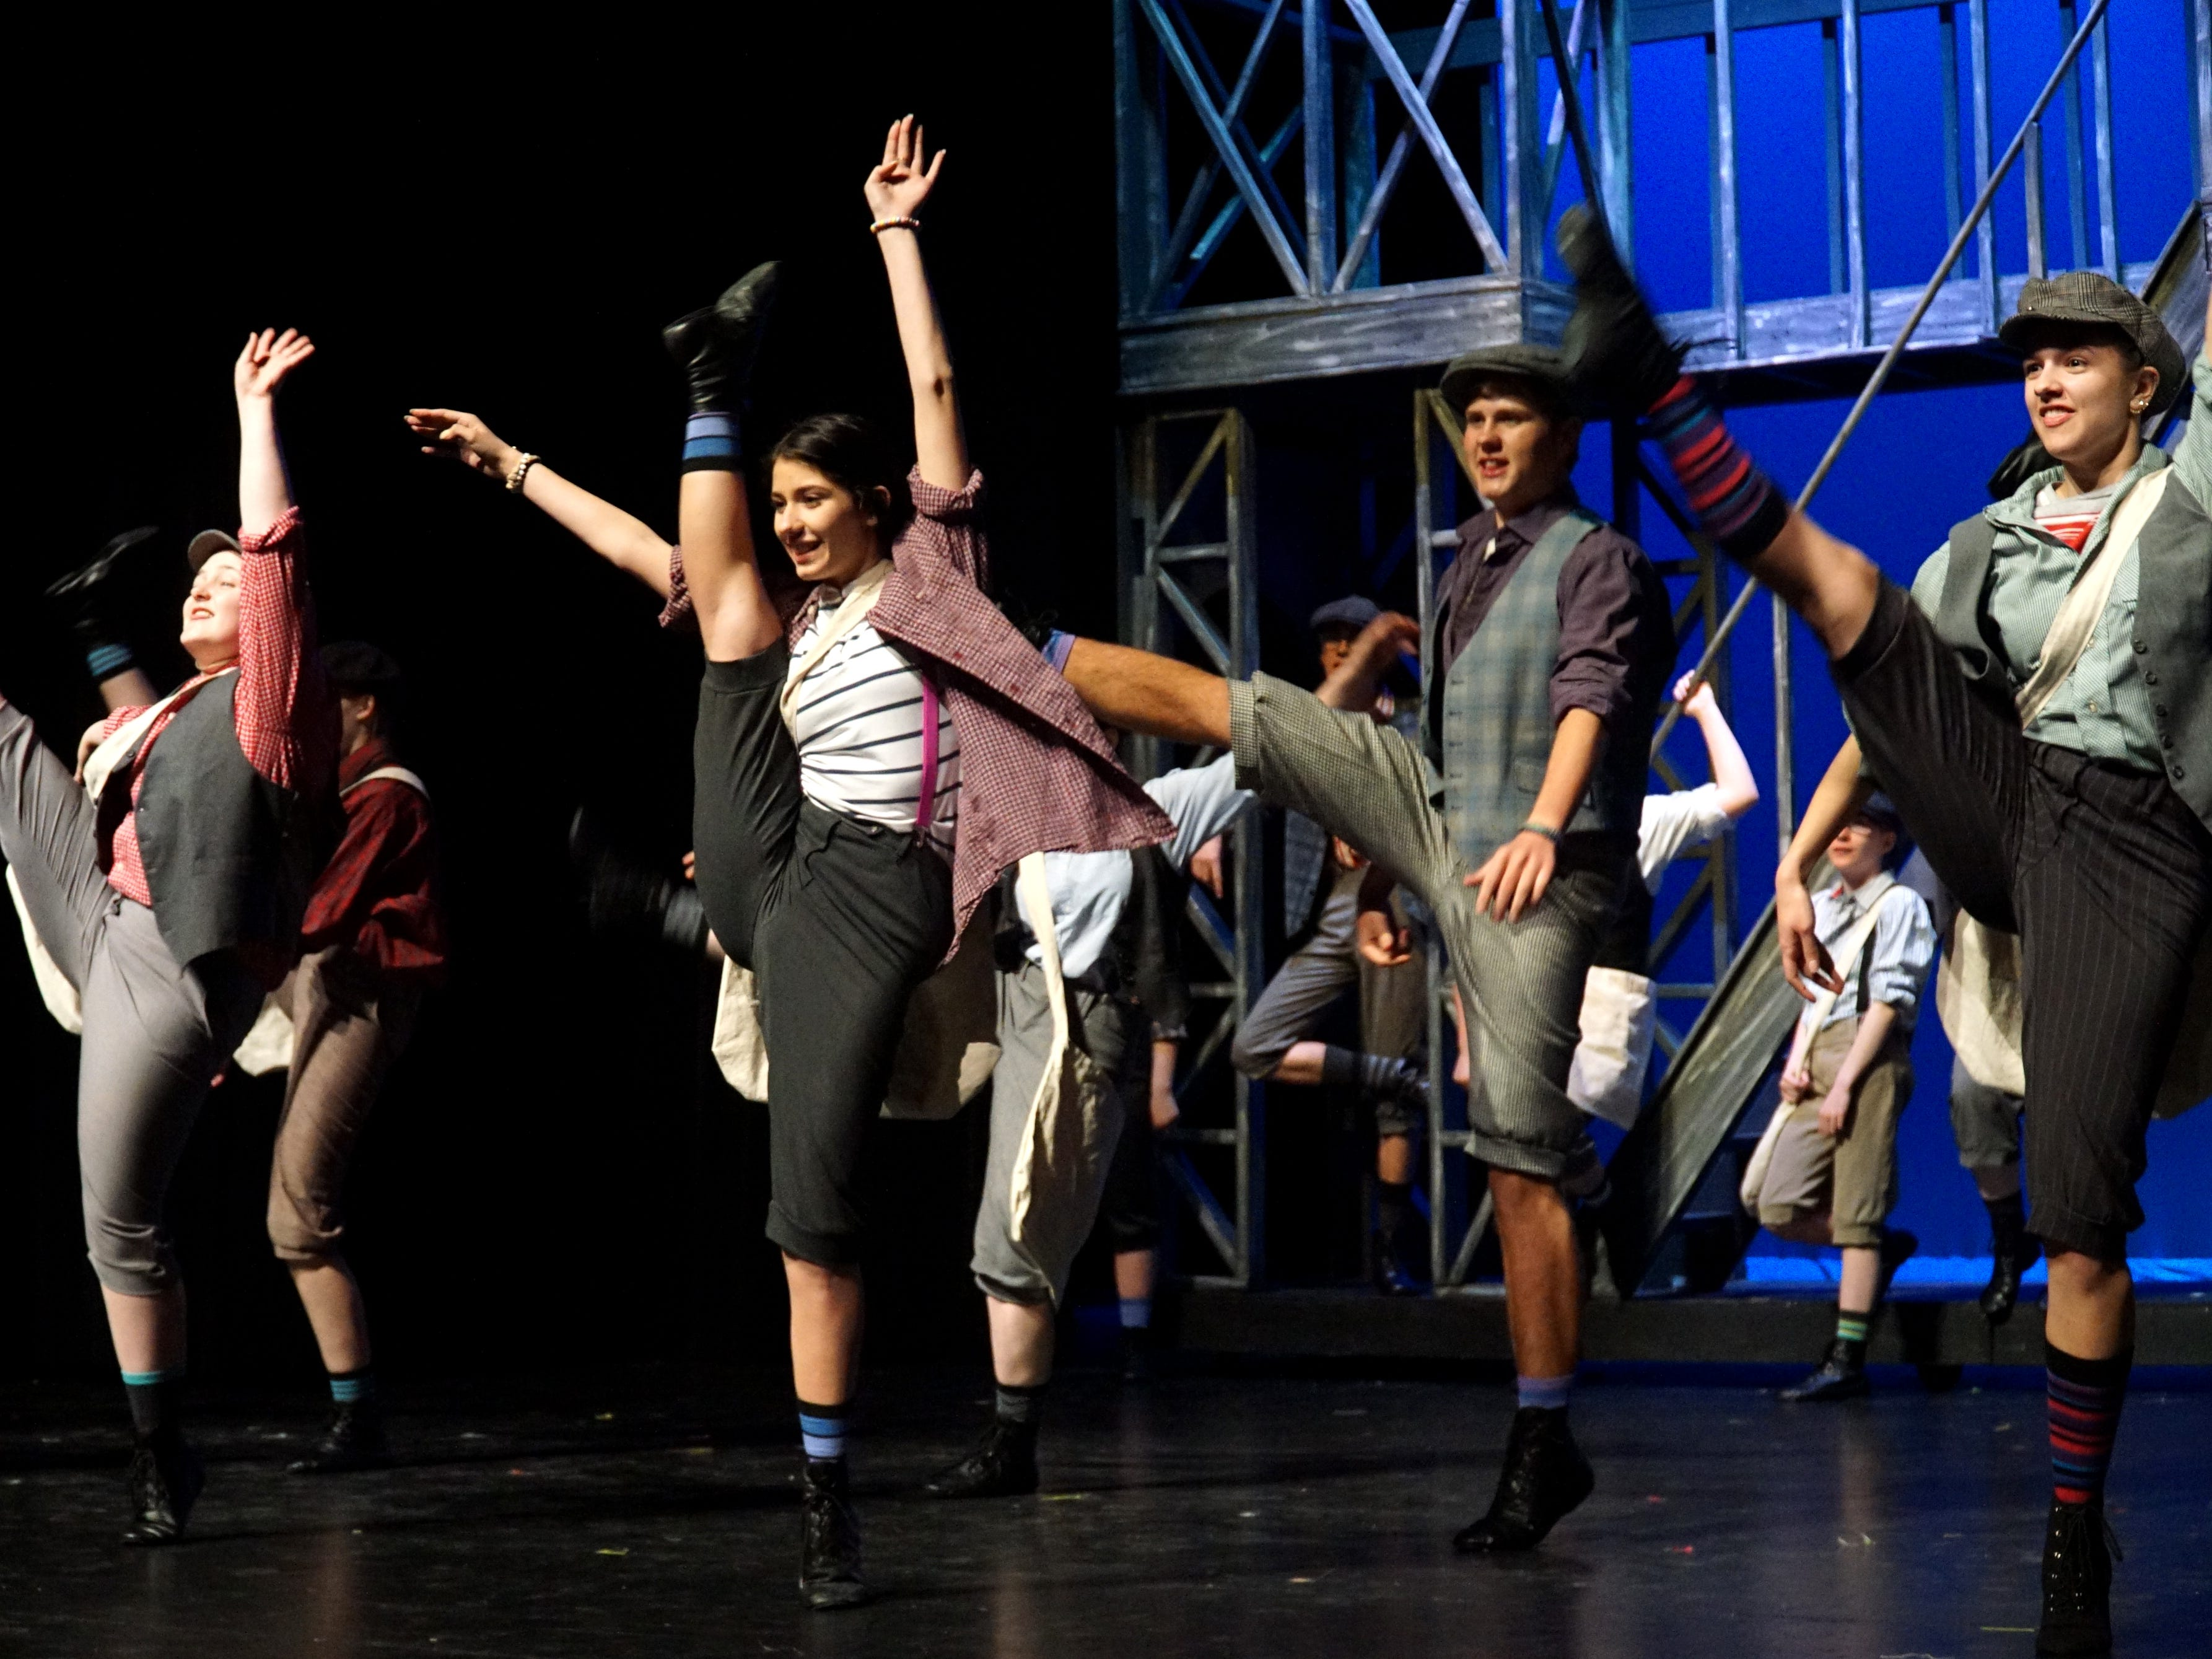 South Lyon East High's cast of Newsies rehearses a dance number from the Disney musical.